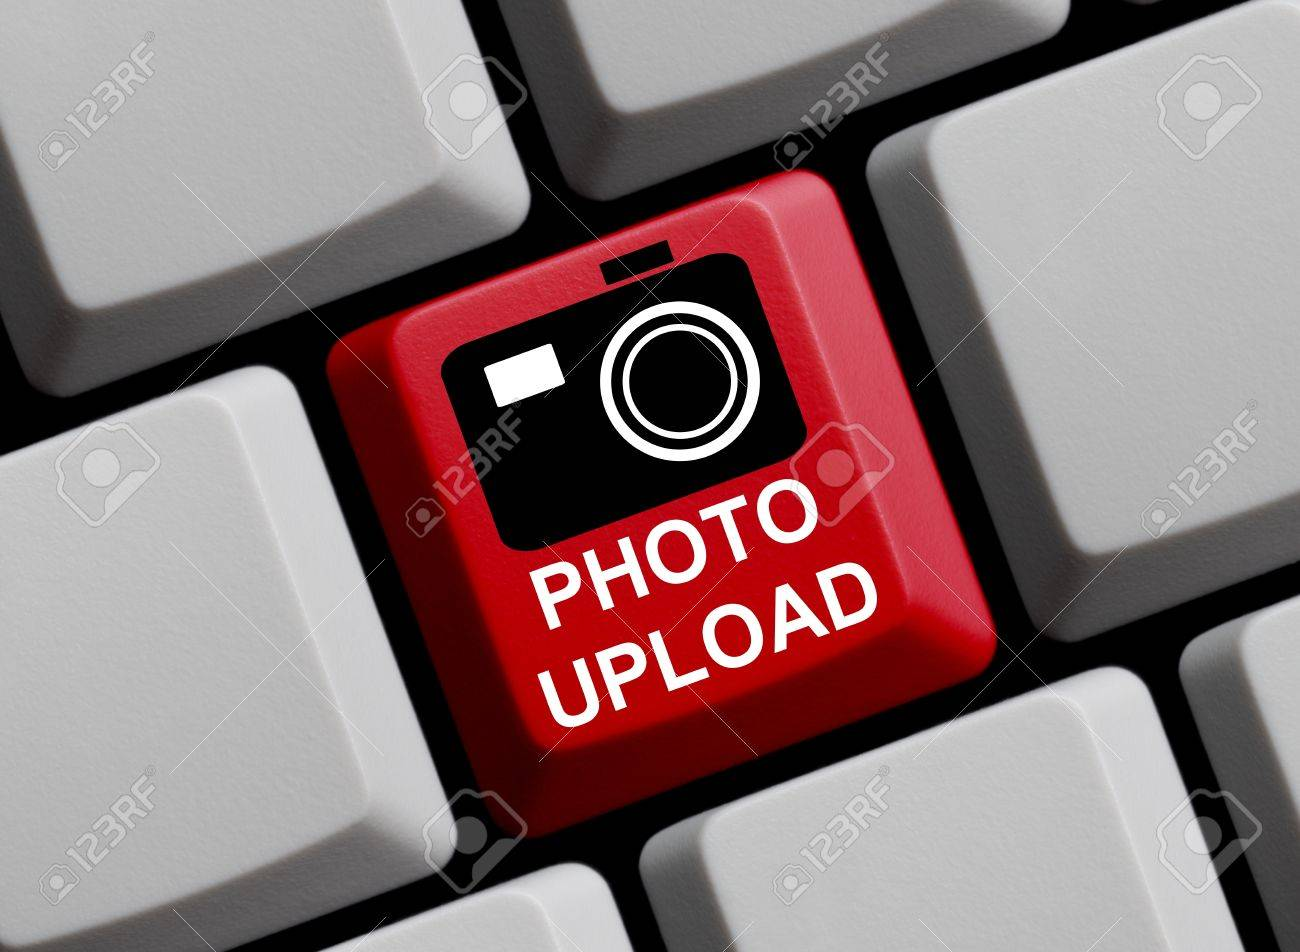 images Upload Stock Photo - 17445141